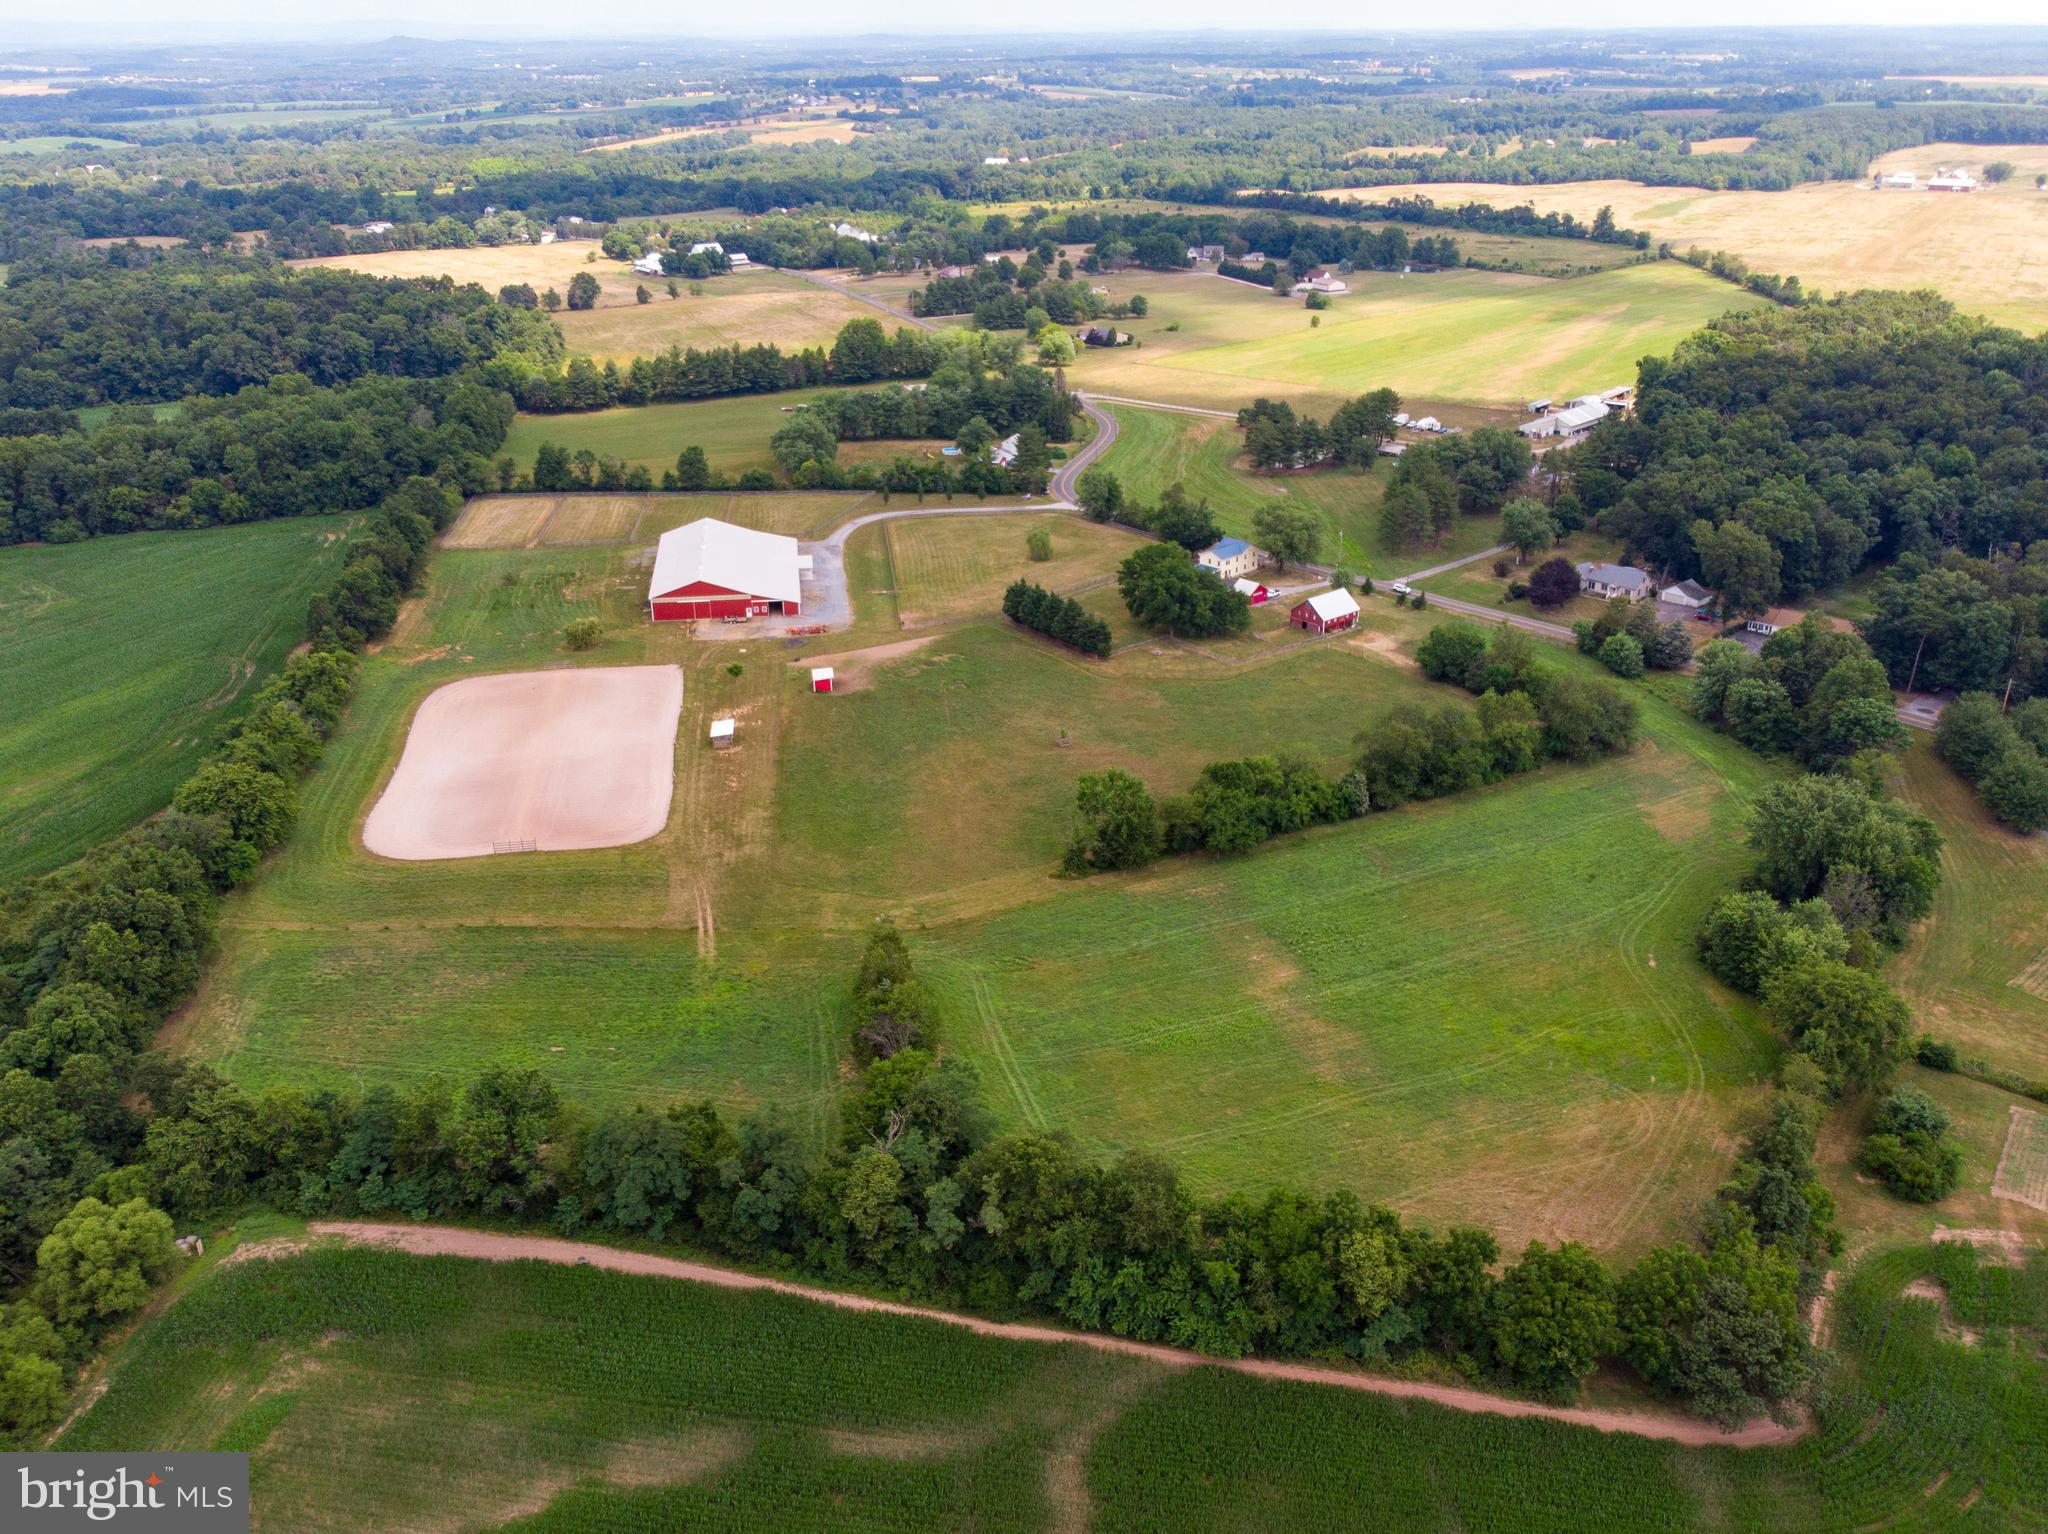 Come home to everything you'd want for your turnkey farm or equestrian facility! 21 acres of flat, f